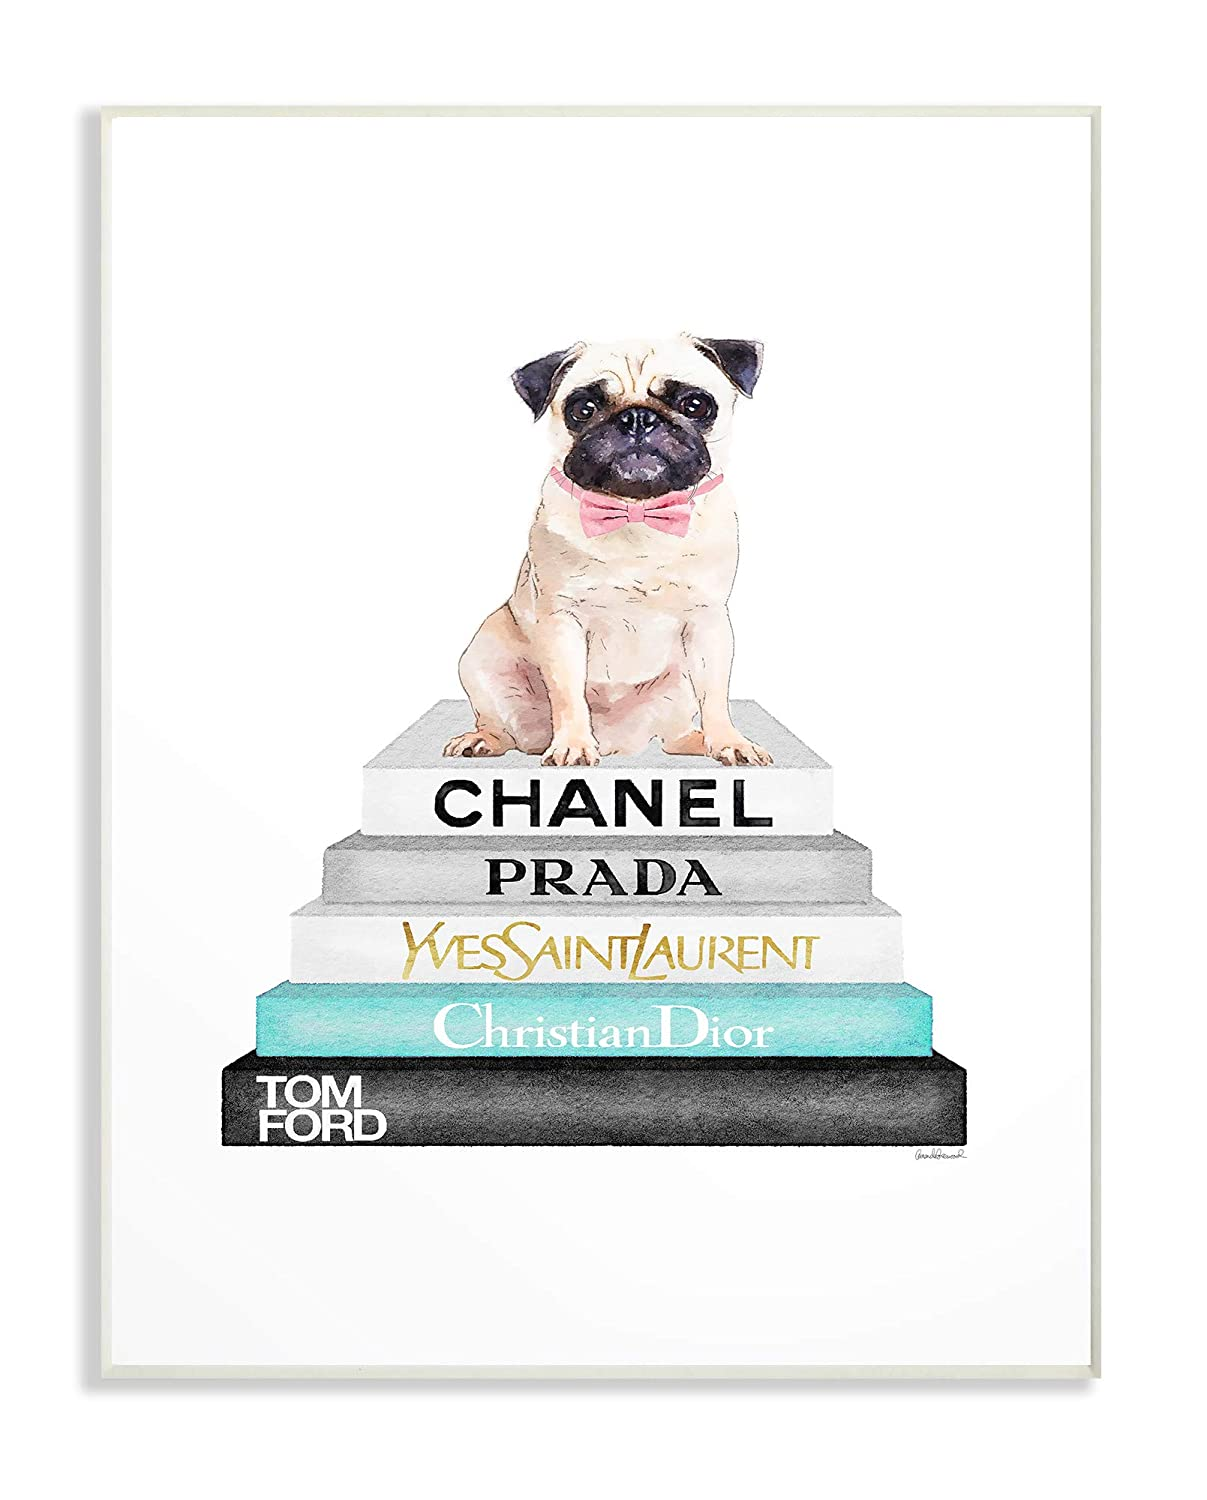 The Stupell Home Decor Grey Teal and Black Fashion Bookstack with Pug Framed Giclee Texturized Art 24 x 30 Multi-Color